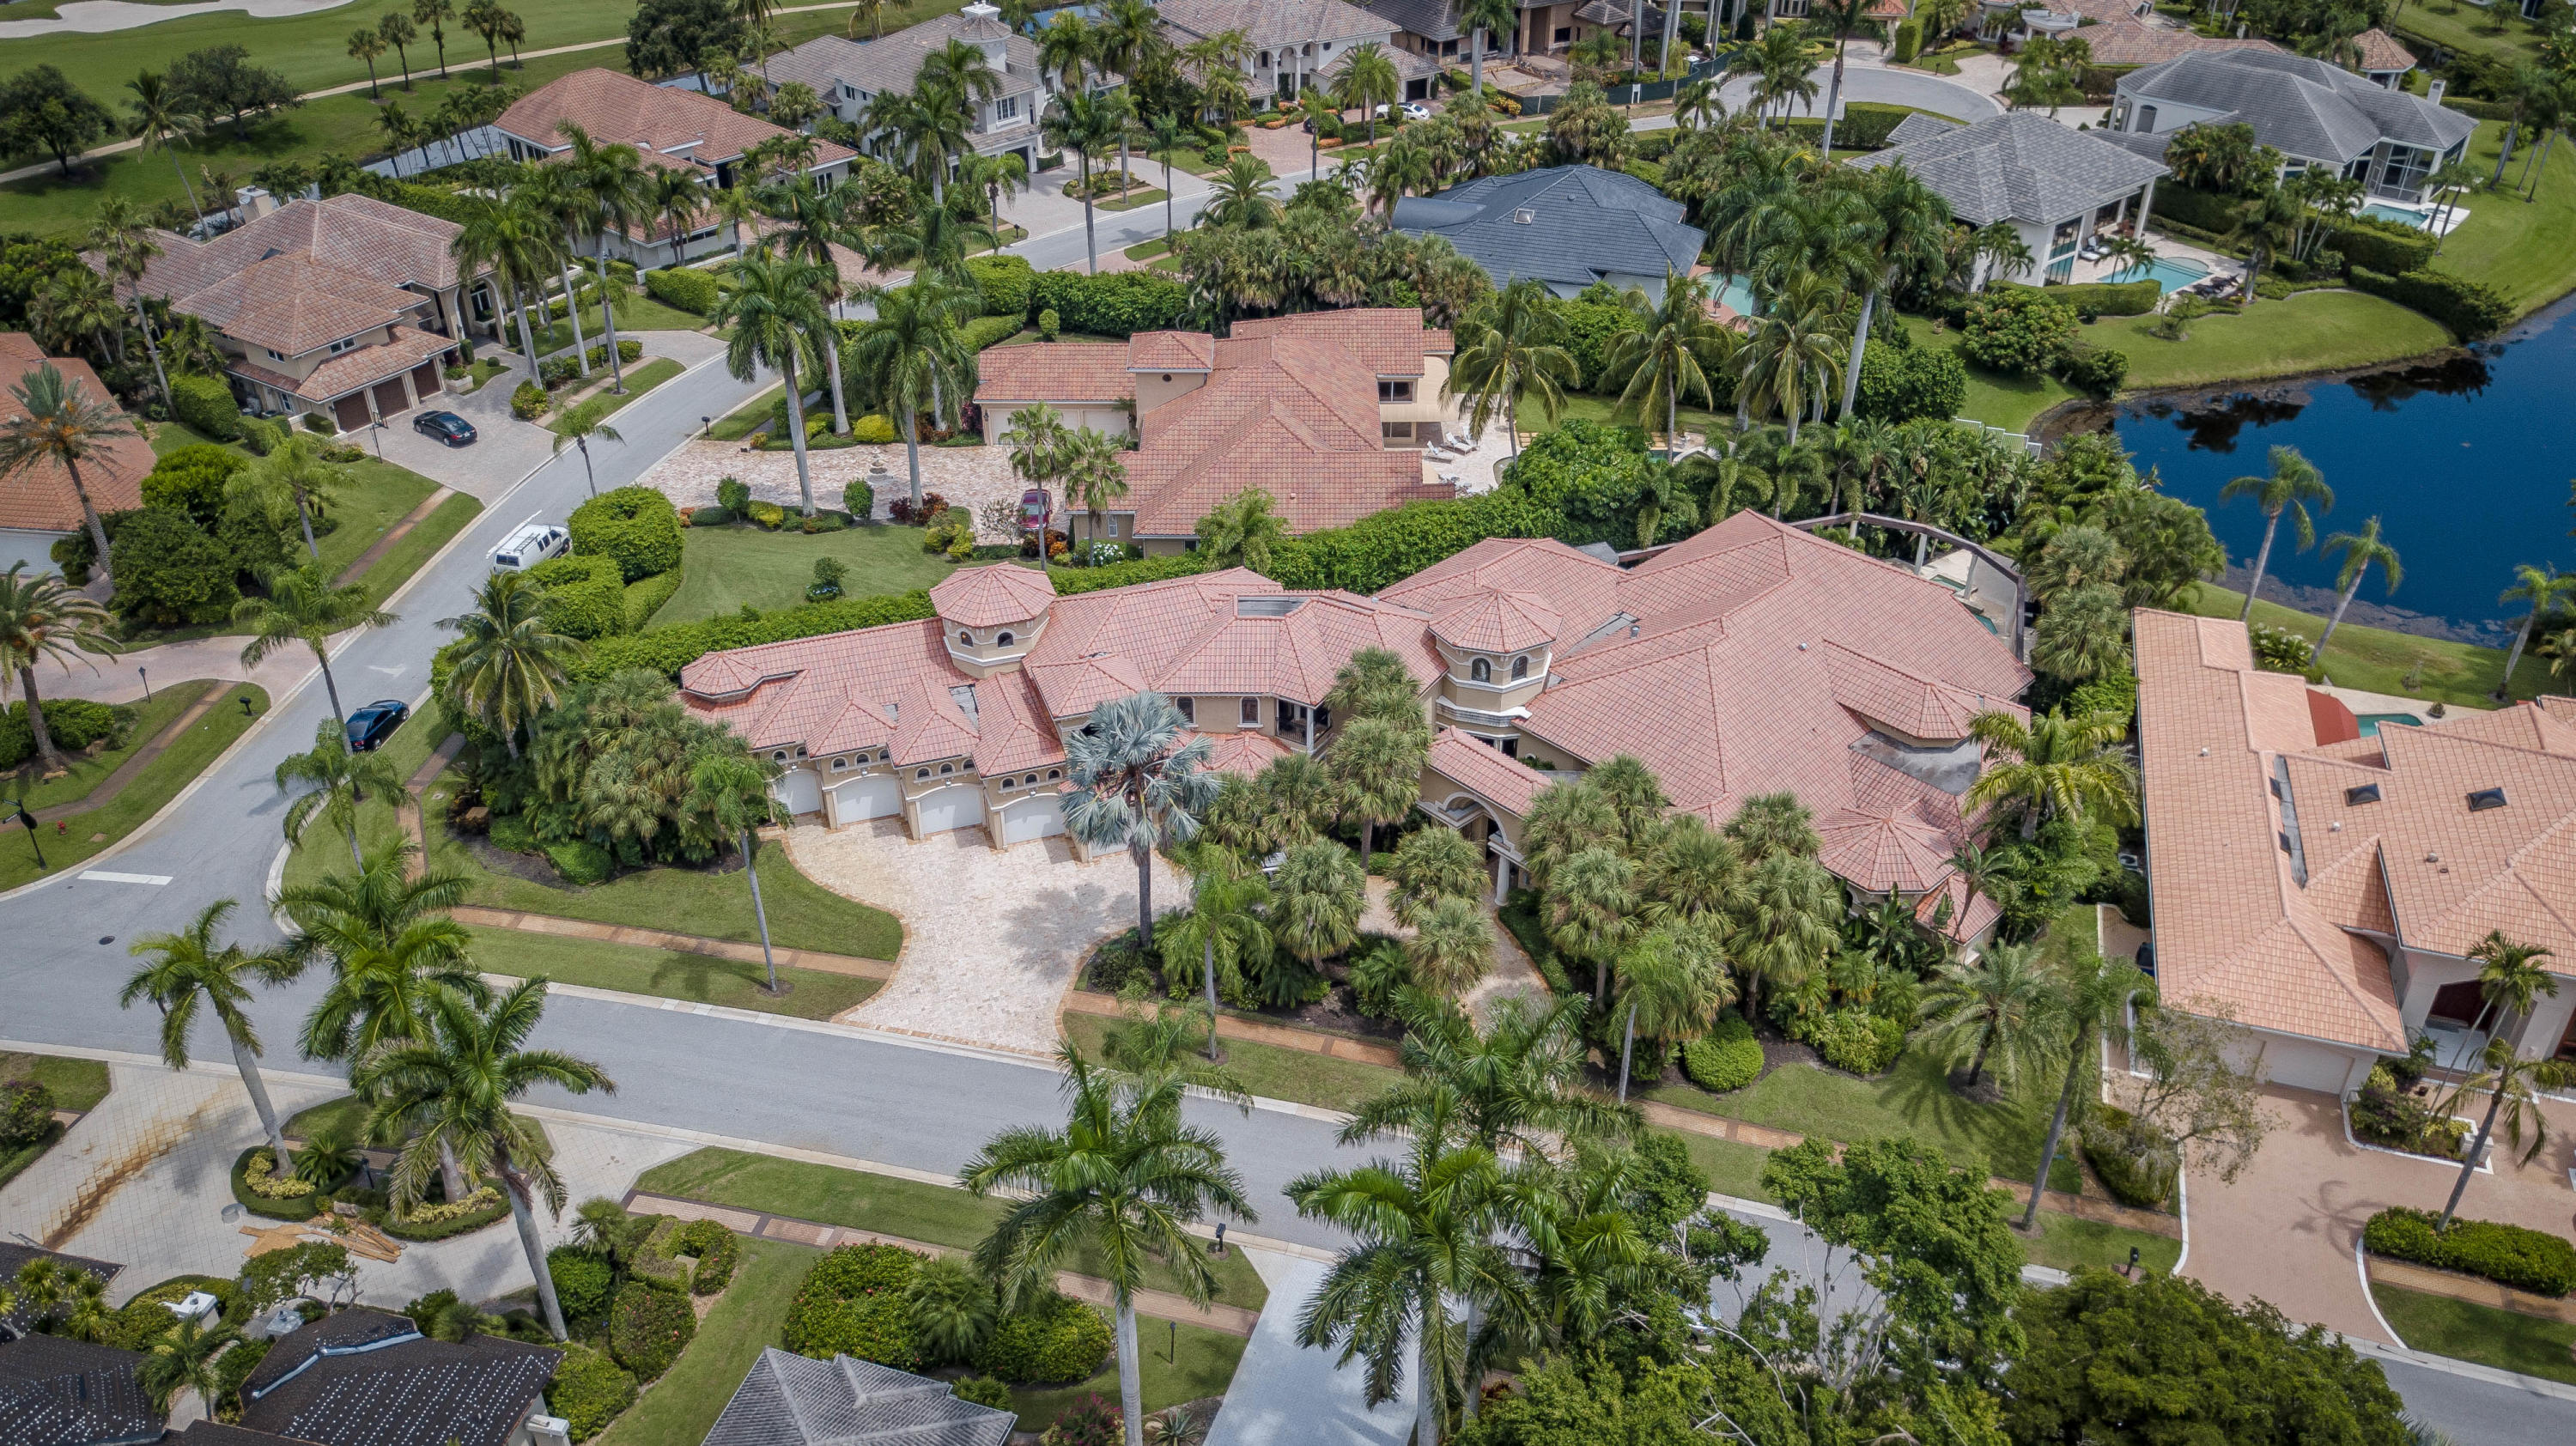 6915 Queenferry Circle, Boca Raton, Florida 33496, 6 Bedrooms Bedrooms, ,9.2 BathroomsBathrooms,Single Family,For Sale,ST ANDREWS COUNTRY CLUB,Queenferry,RX-10461151